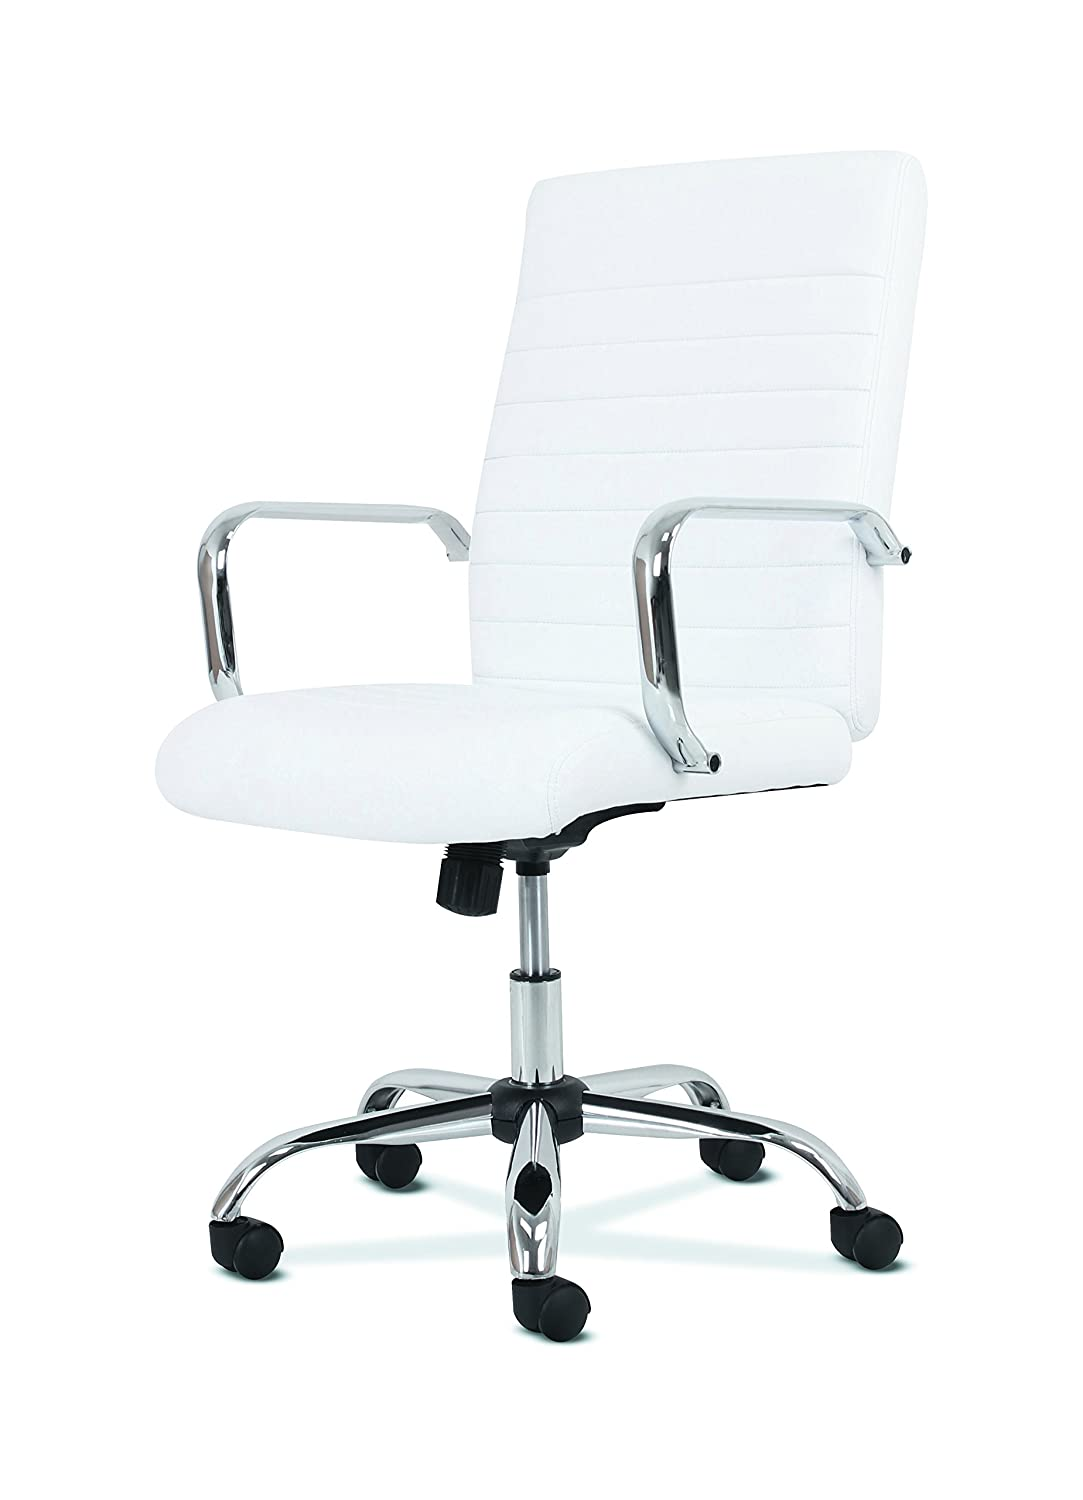 reputable site d8b33 84660 Sadie Executive Computer Chair- Fixed Arm for Office Desk, White Leather  with Chrome Accents